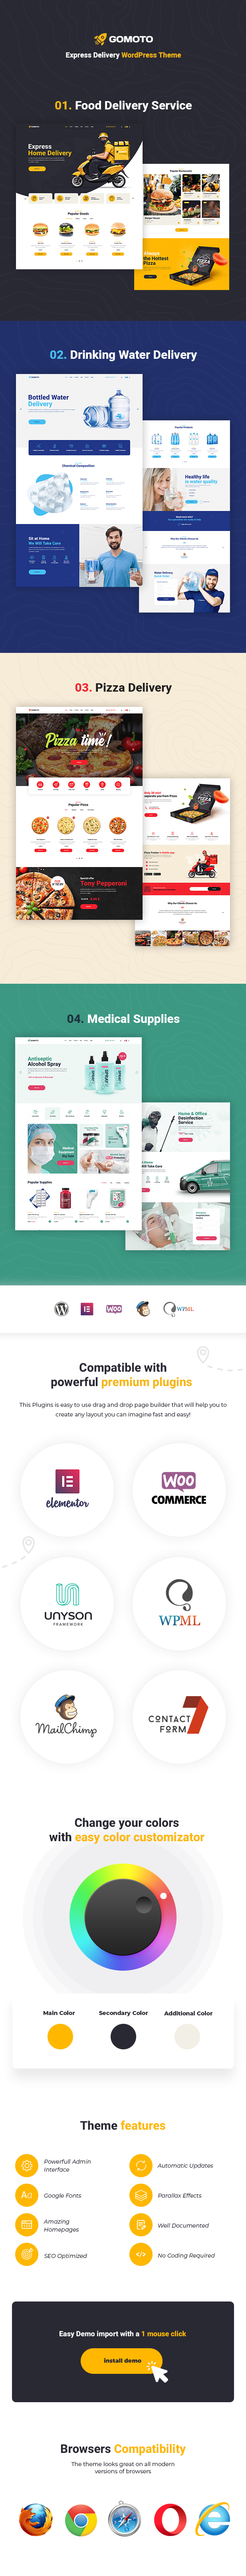 Gomoto - Food Delivery & Medical Supplies WordPress Theme - 5